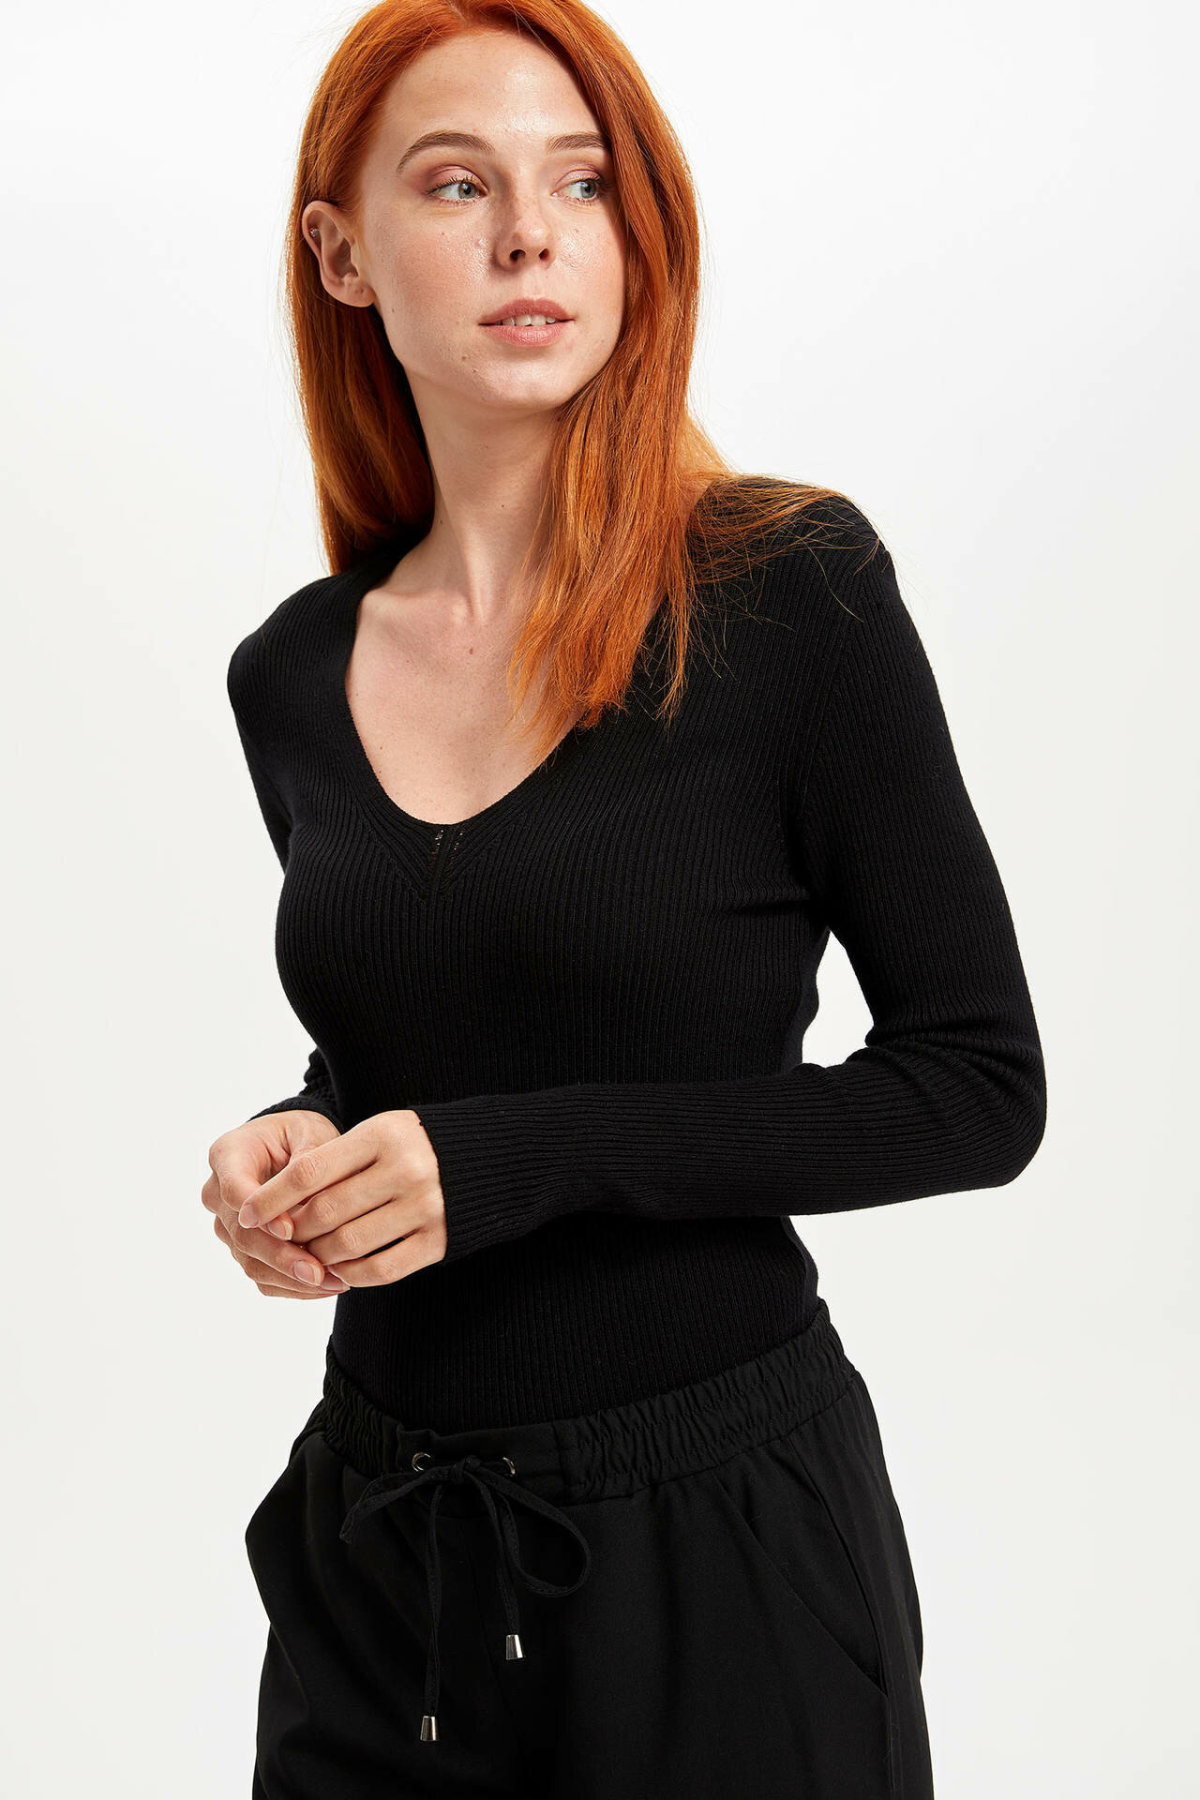 DeFacto Woman Autumn Winter U-neck Long Sleeve Pullover Women Casual Fit Body Top Tees Female Knitted T-Shirts-L4443AZ19WN